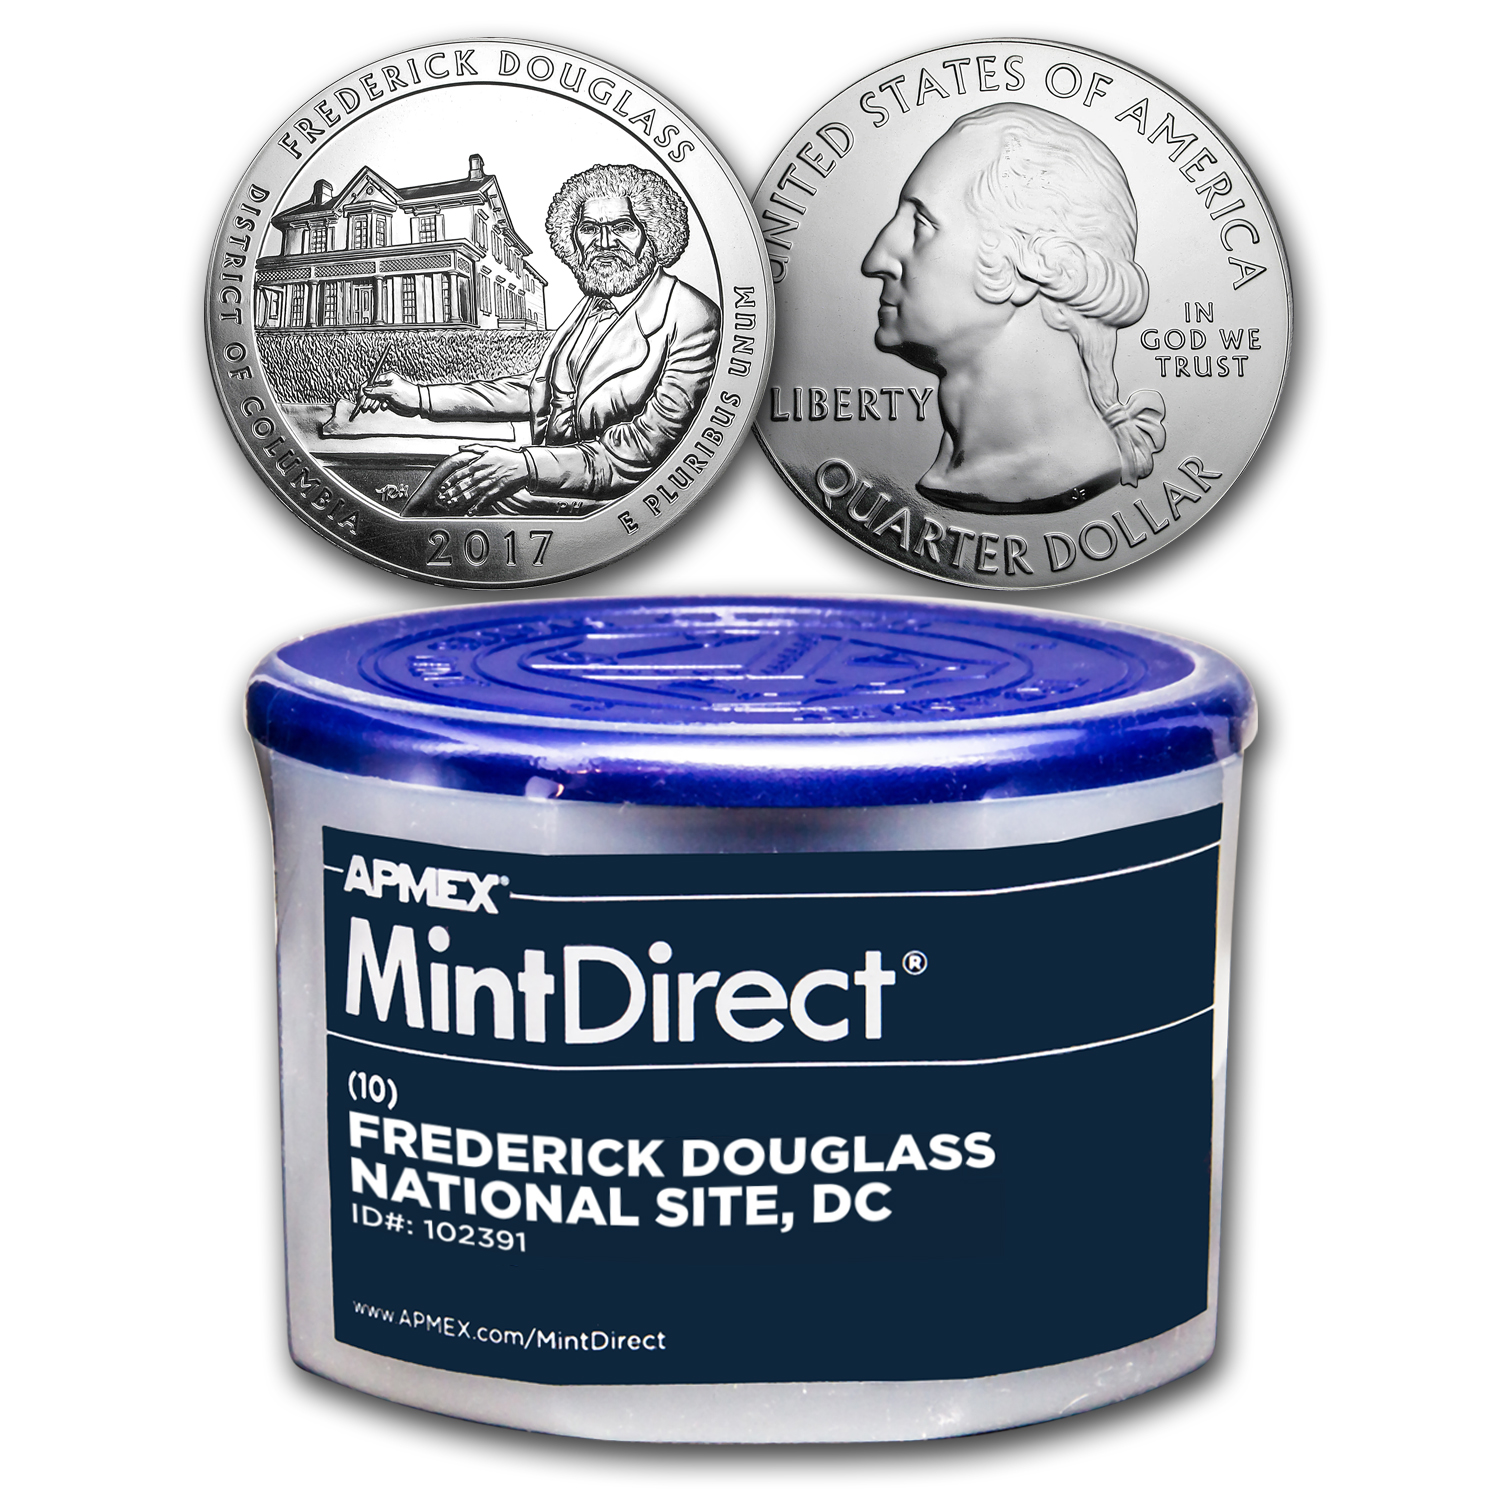 2017 5 oz Silver ATB Frederick Douglass 10-Coin MintDirect® Tube